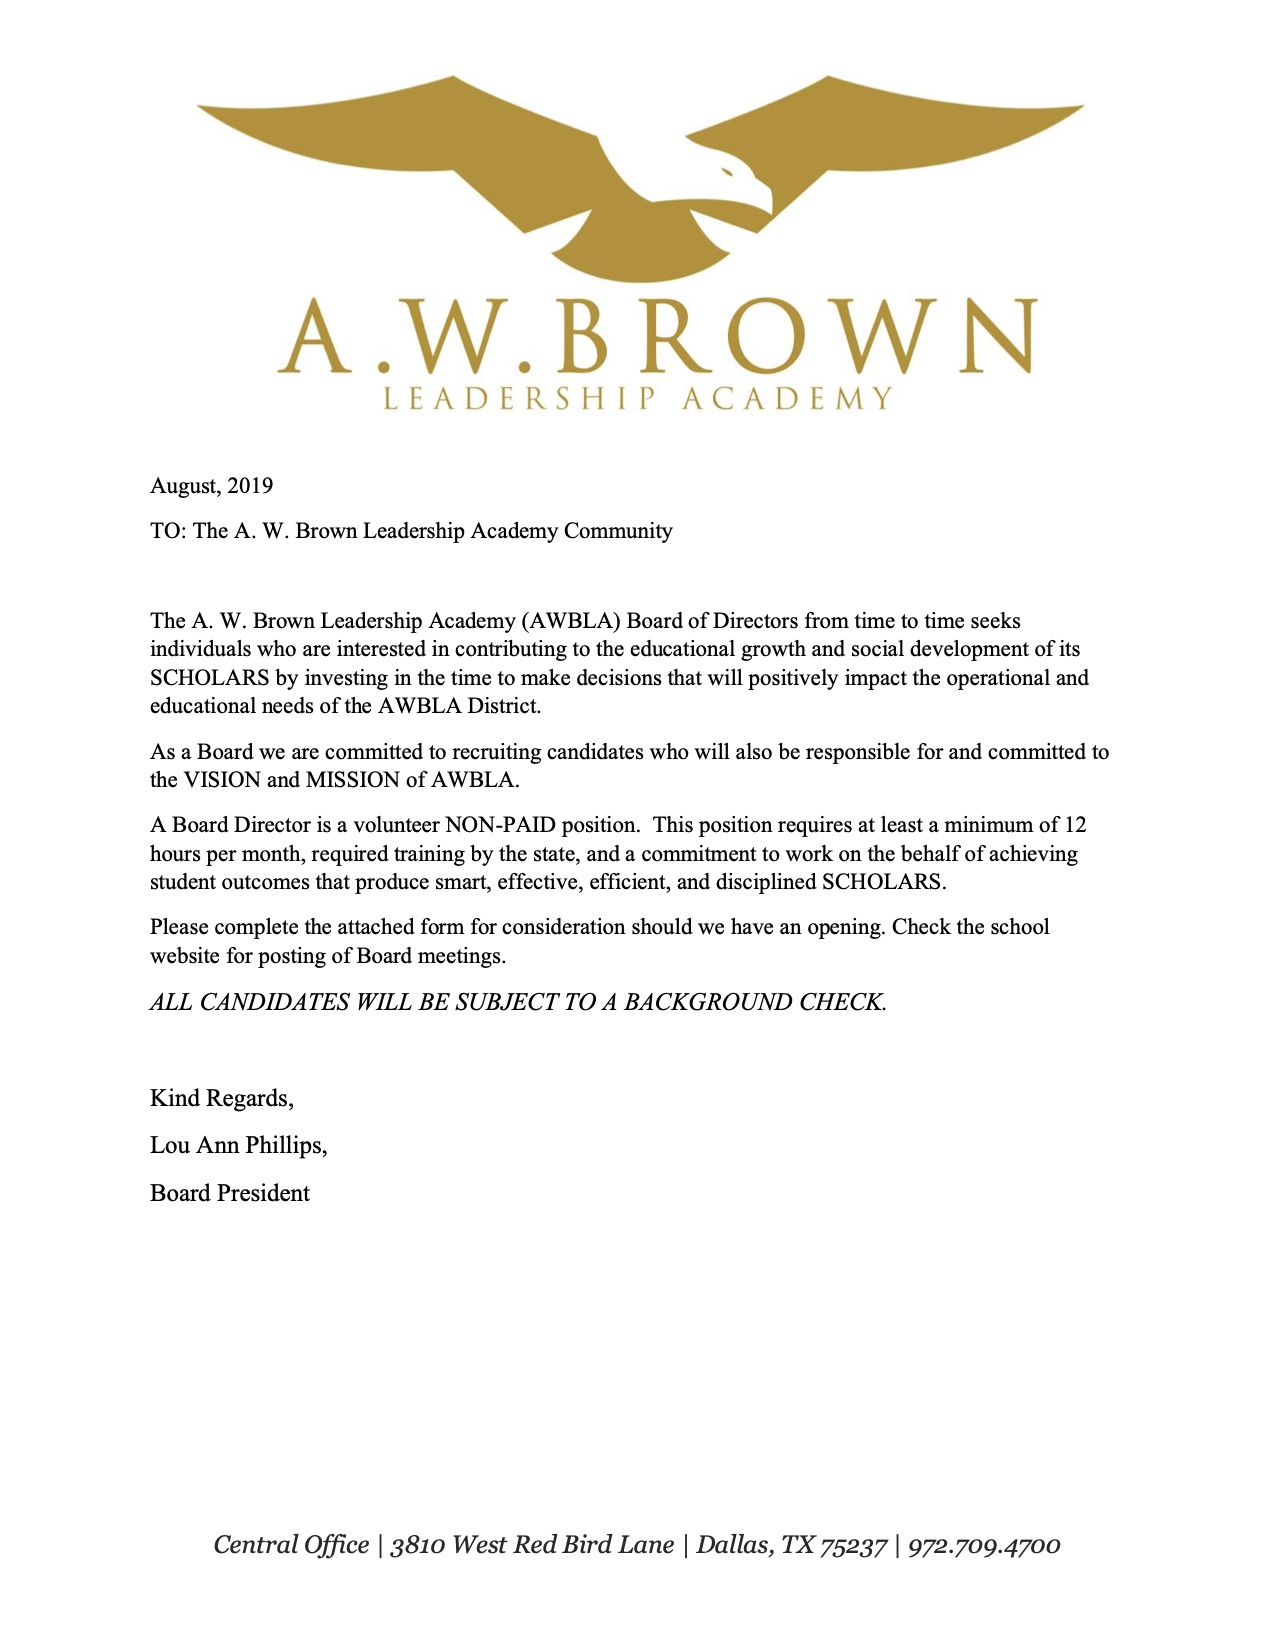 Board Invitation Letter